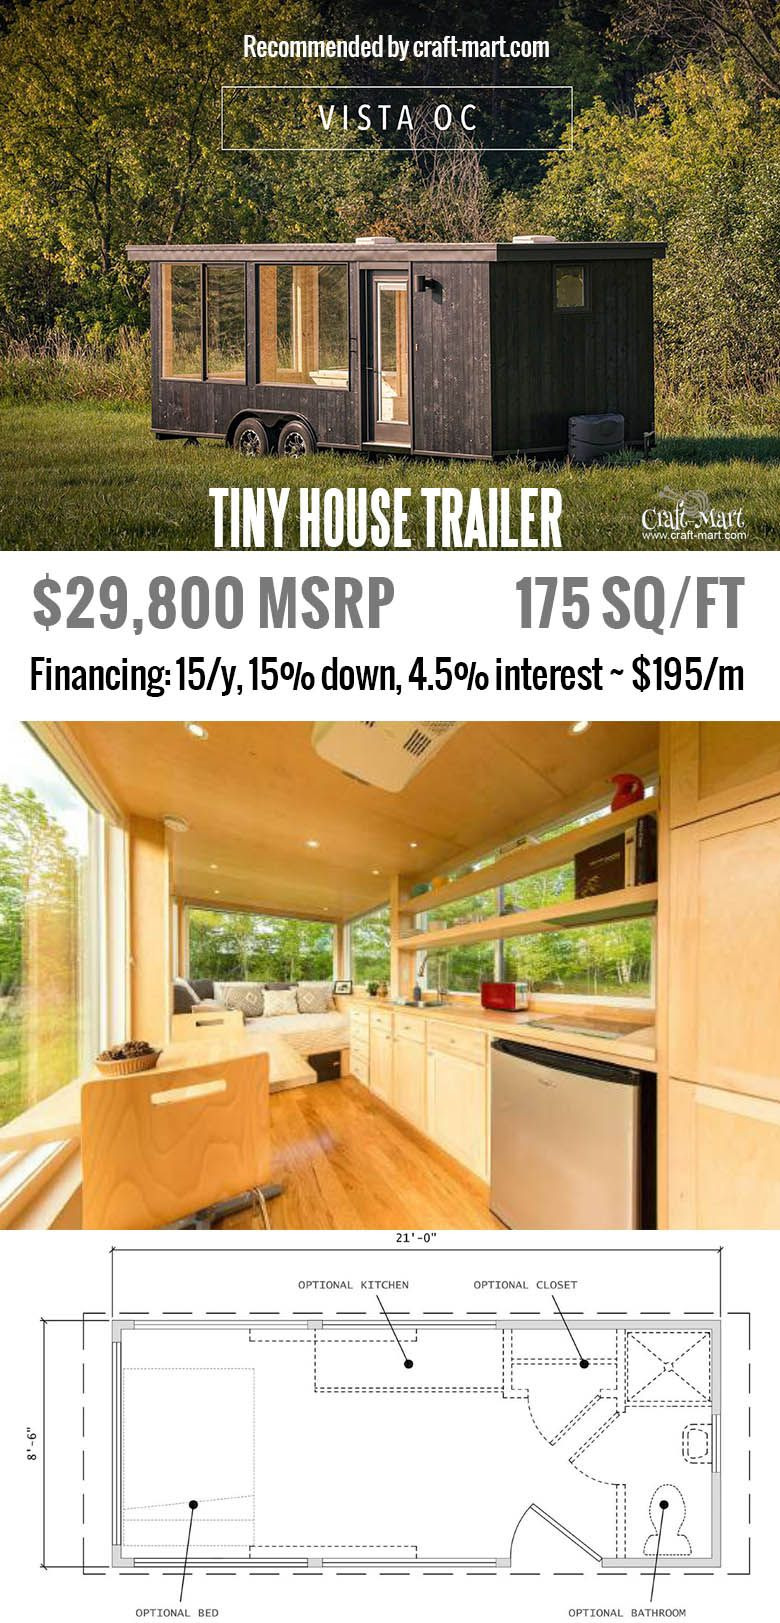 Most Beautiful Small Homes Inspirational 10 Gorgeous Tiny House Trailers for Digital Nomads